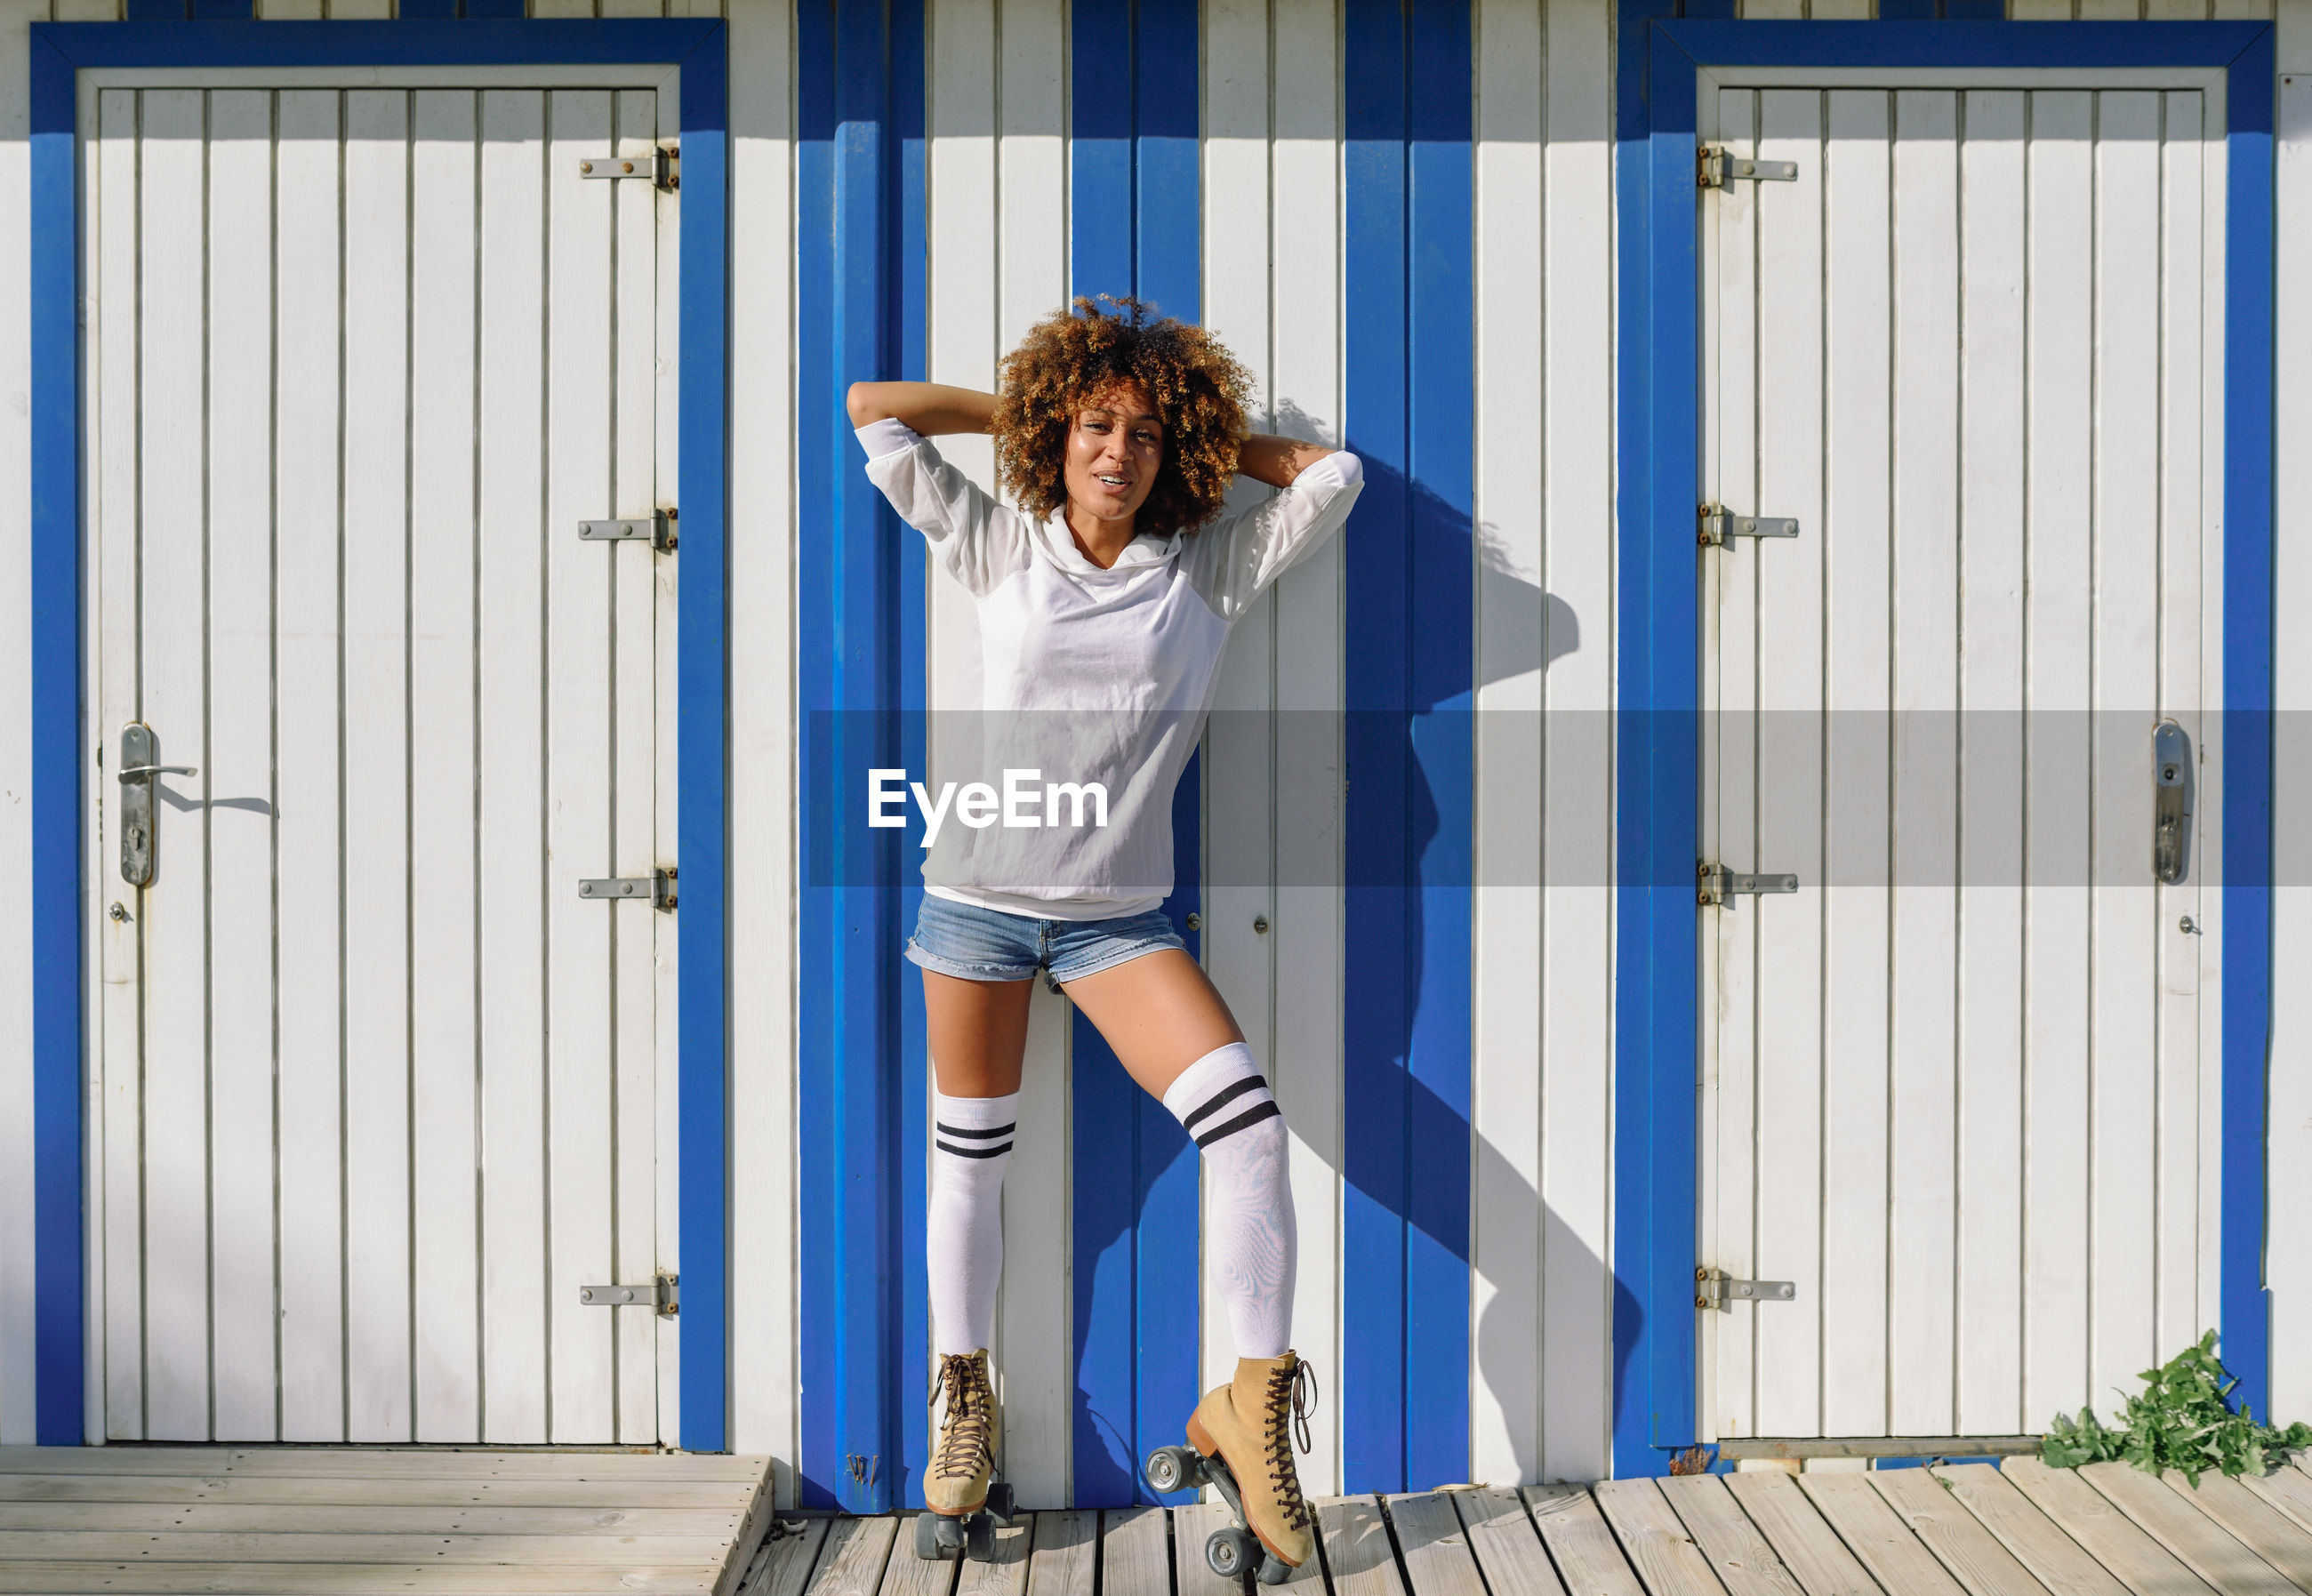 Portrait of woman with roller skates standing amidst white doors